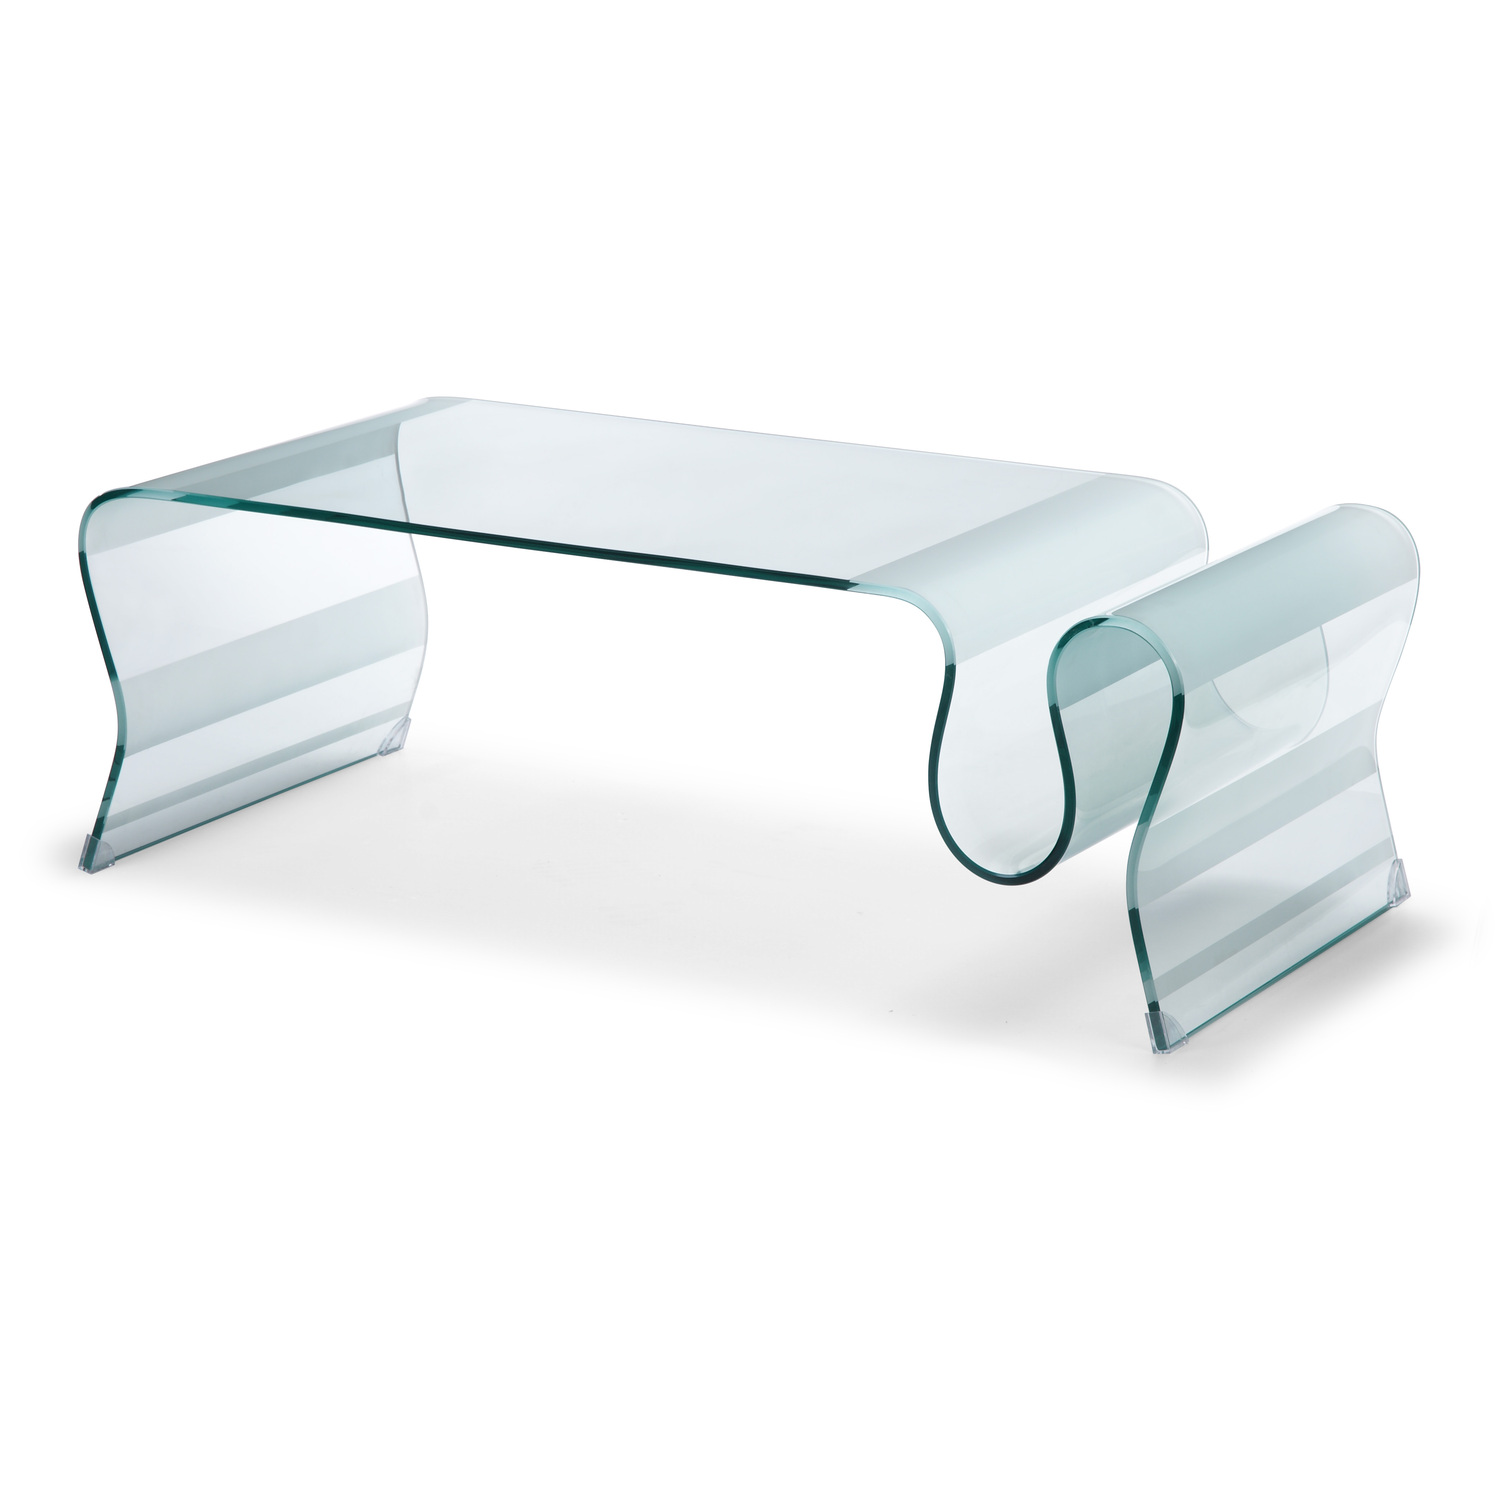 Piece Glass Coffee Table Set